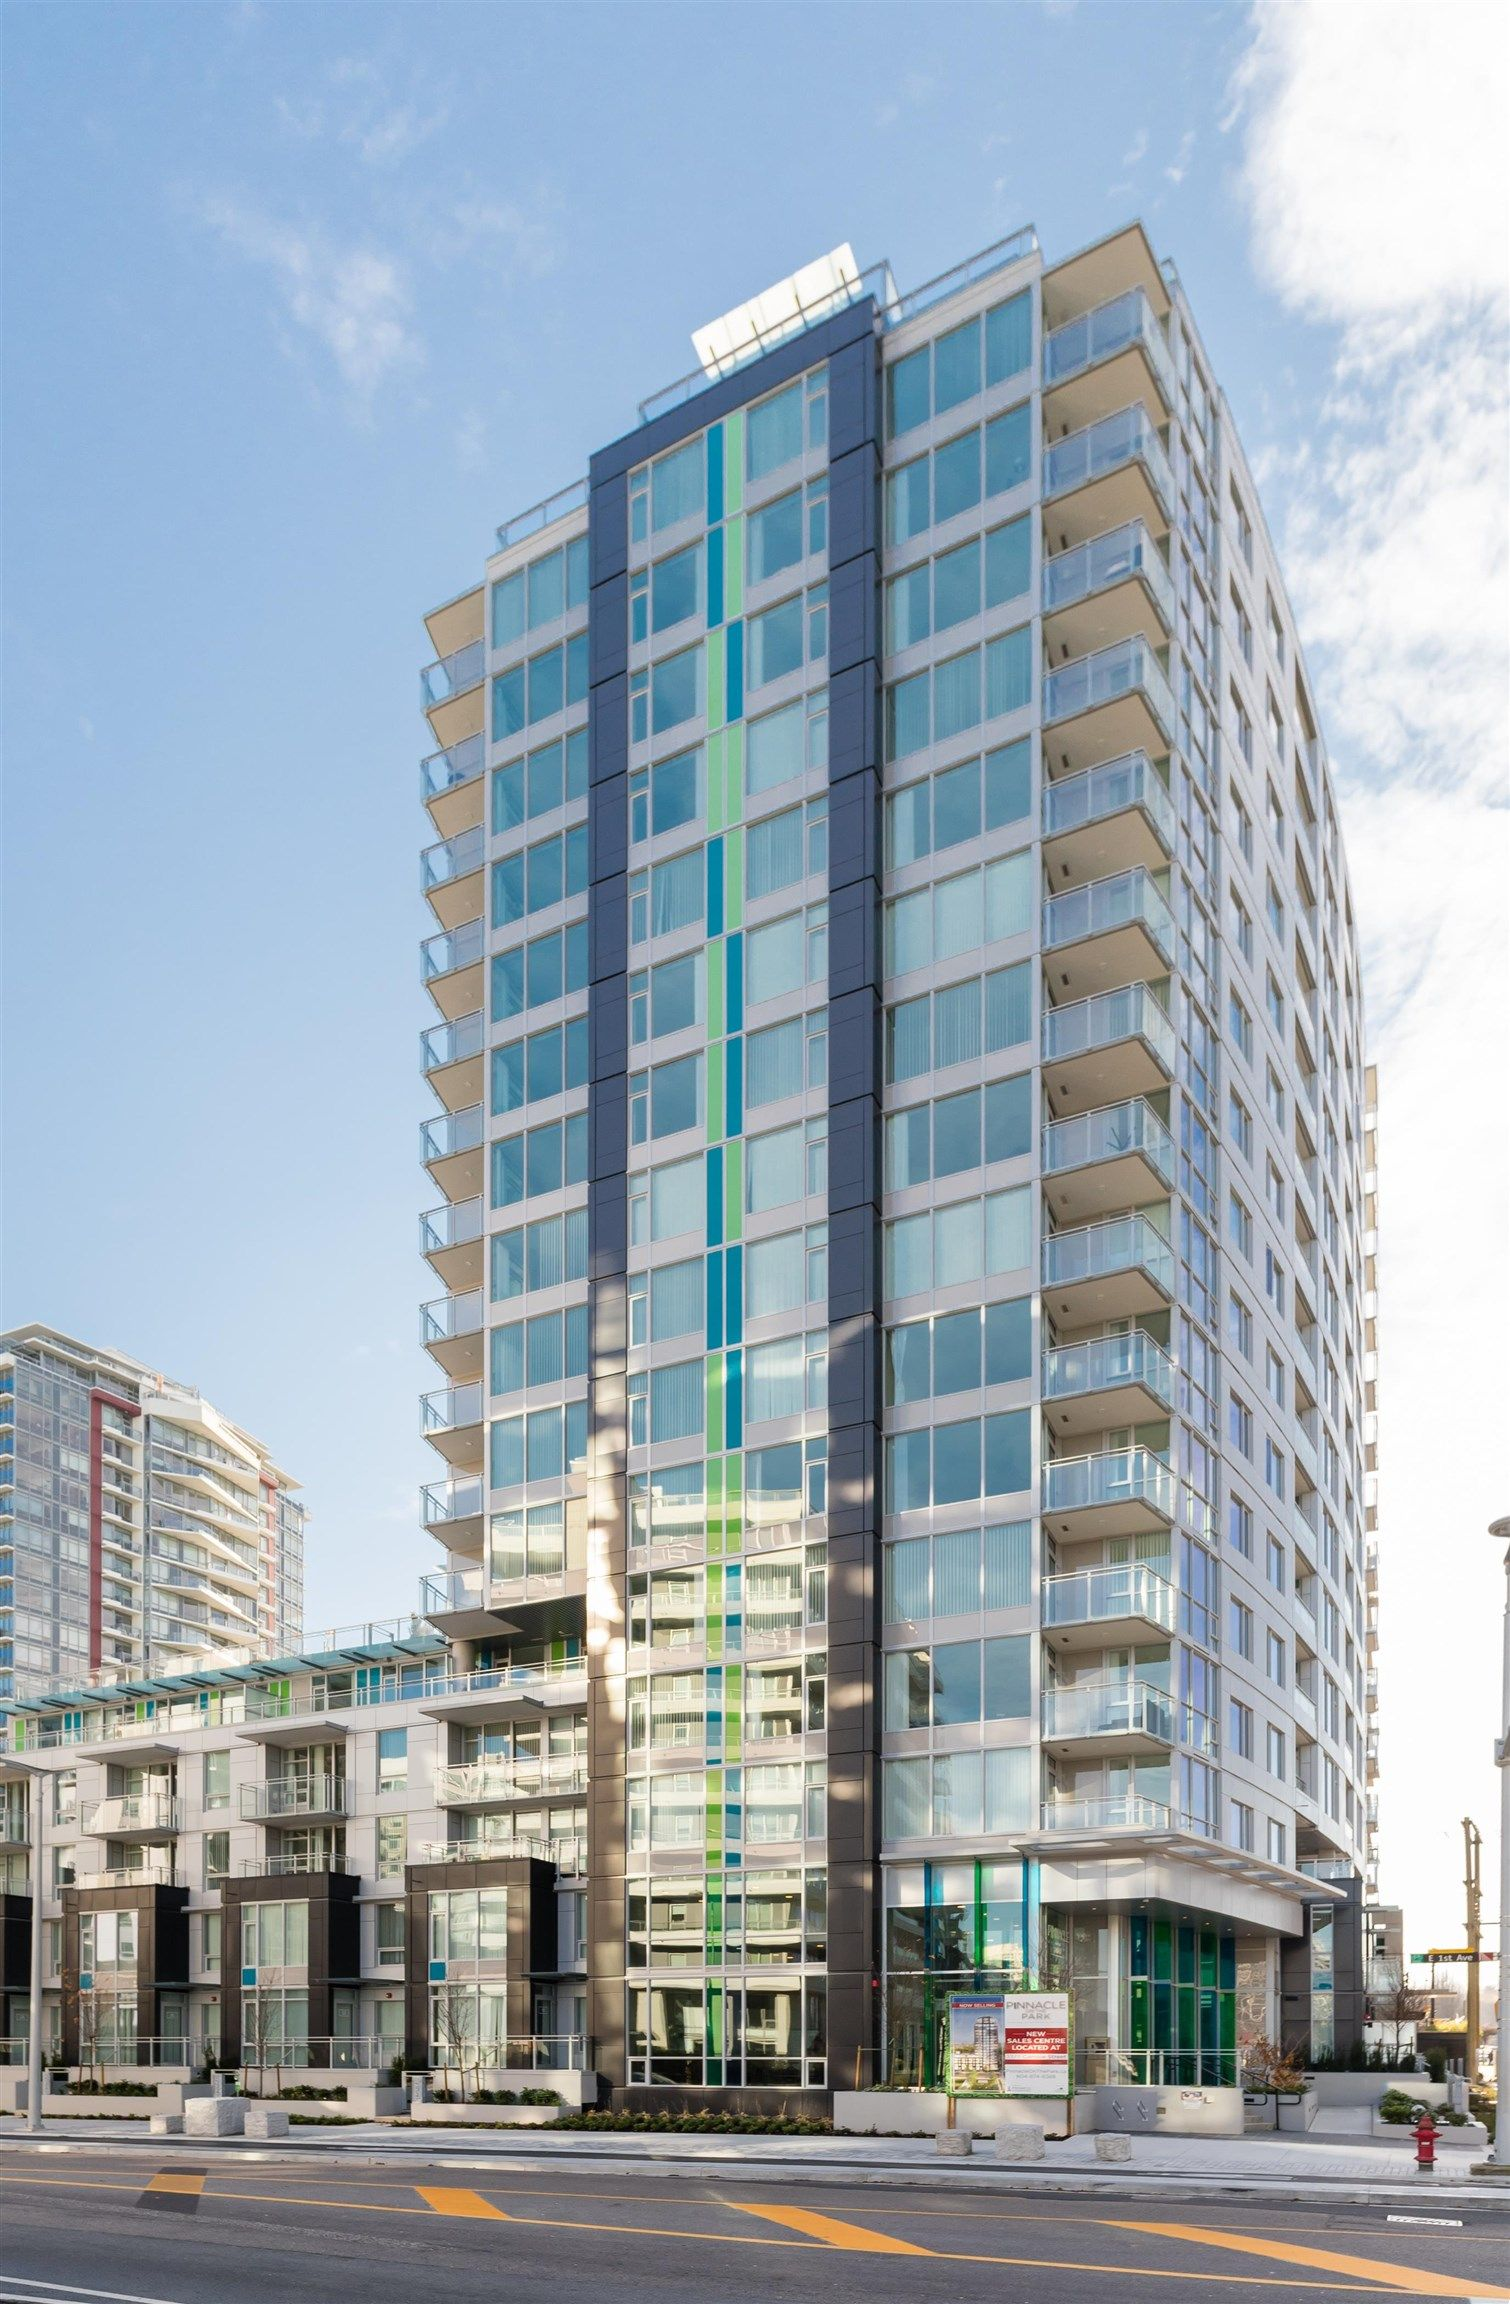 Main Photo: 301 1708 ONTARIO Street in Vancouver: Mount Pleasant VE Condo for sale (Vancouver East)  : MLS®# R2617772